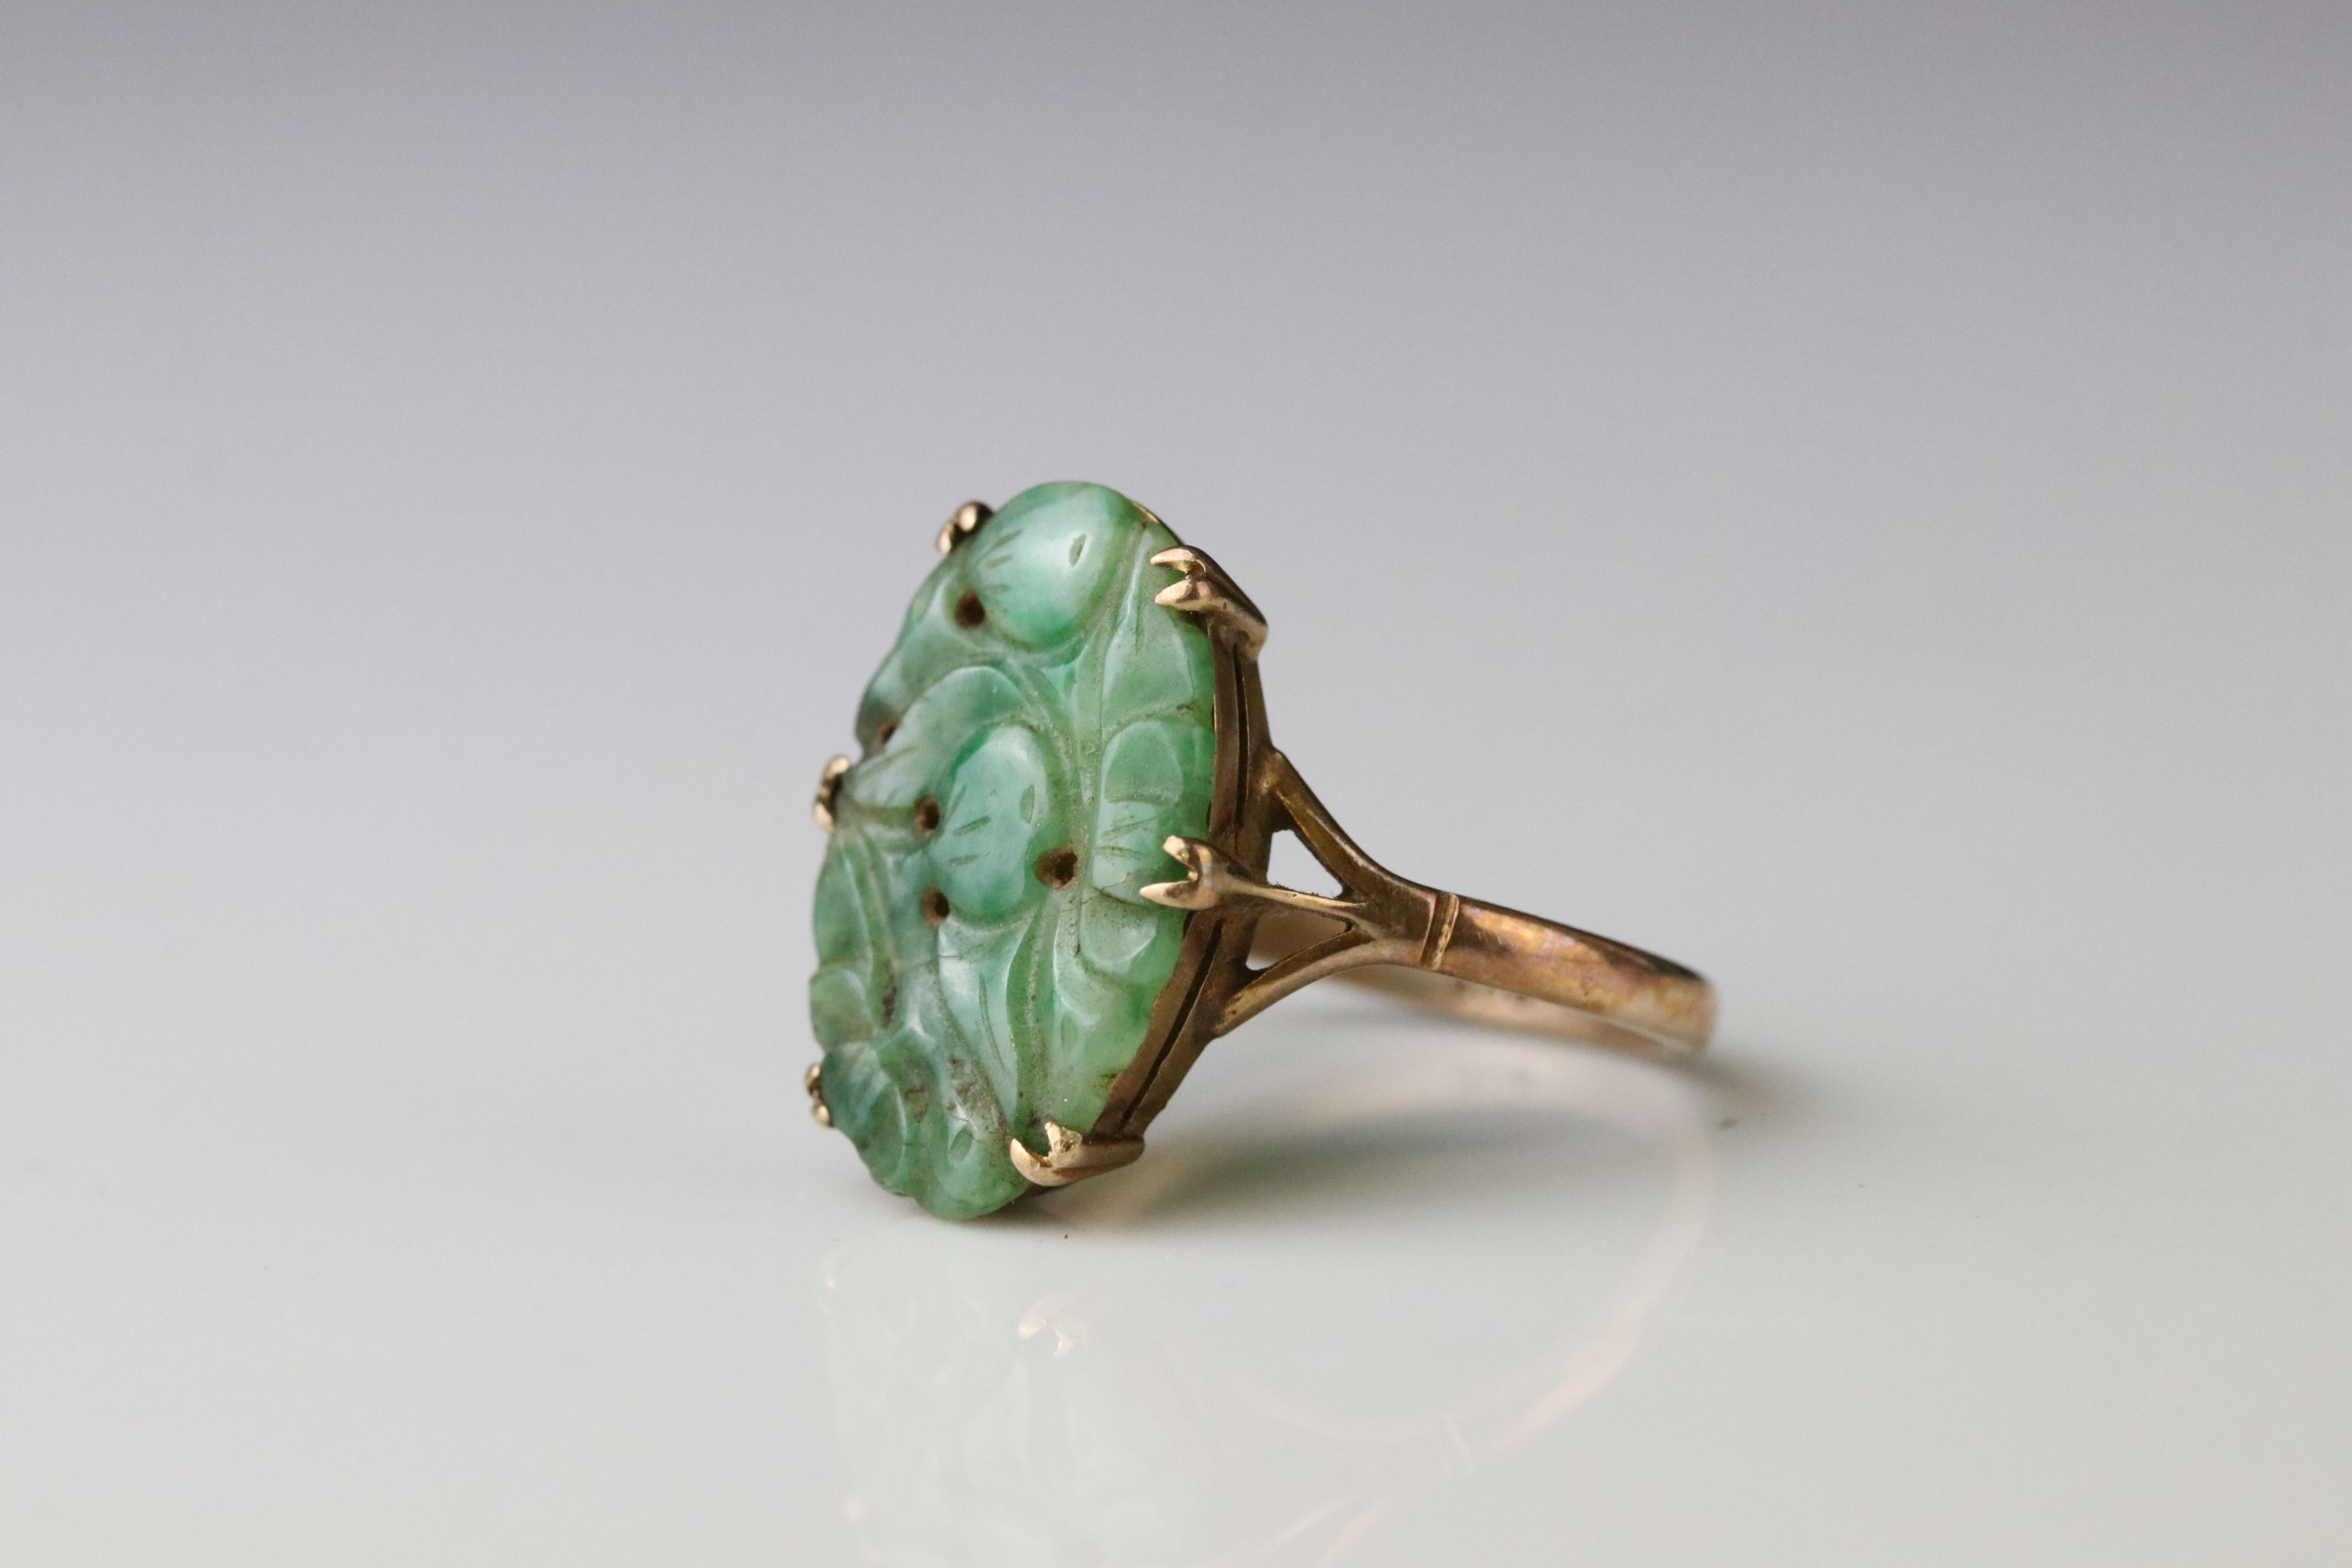 Carved jade 9ct yellow gold ring, the oval pierced carved jade measuring approx 18mm x 11.5mm, - Image 2 of 5